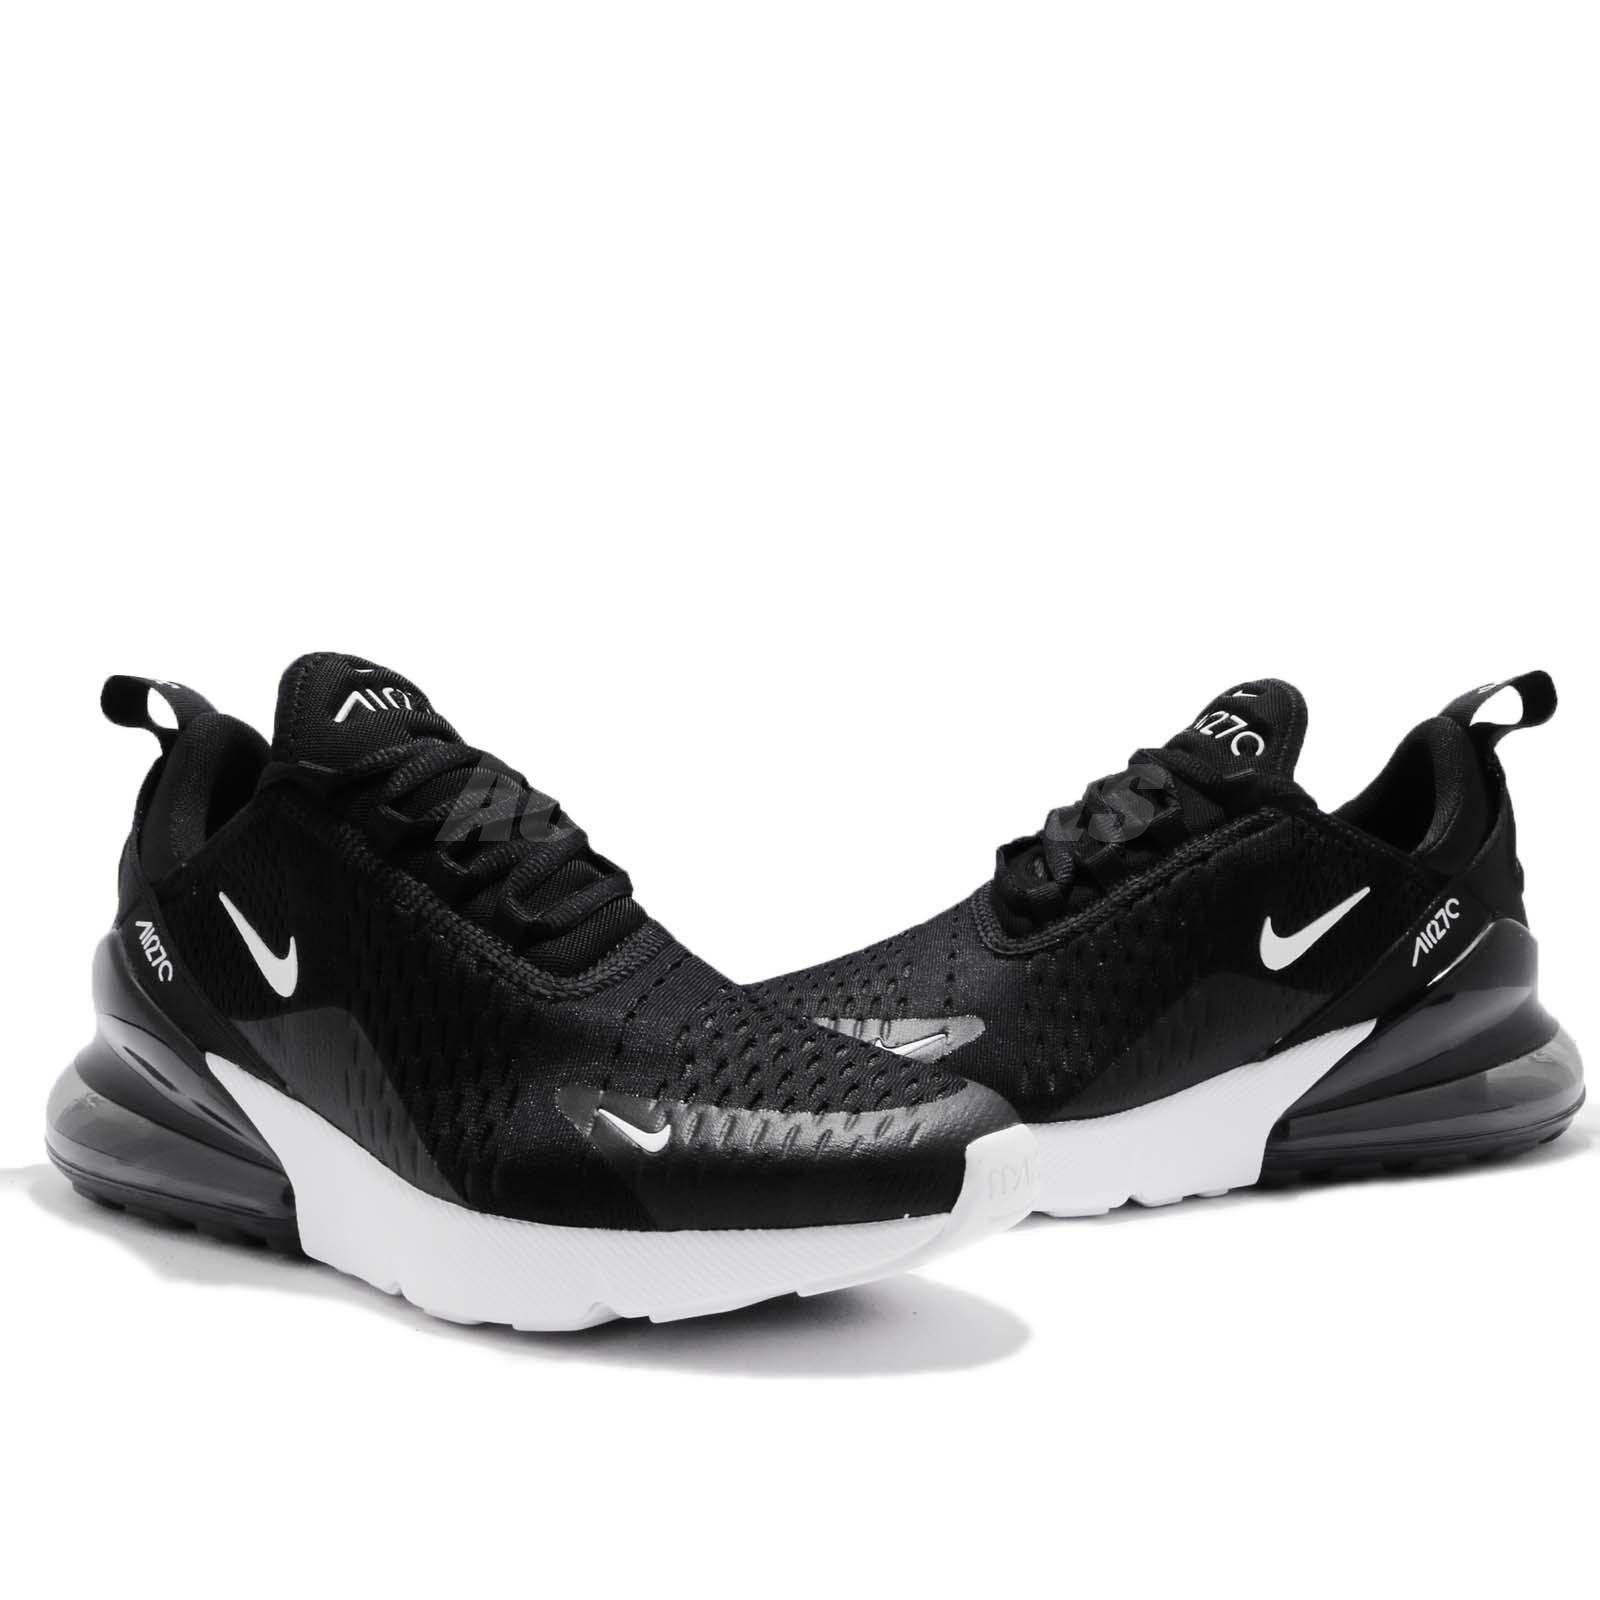 Nike Wmns Air Max 270 Black Anthracite White Women Running Shoes ... bddfd39be15